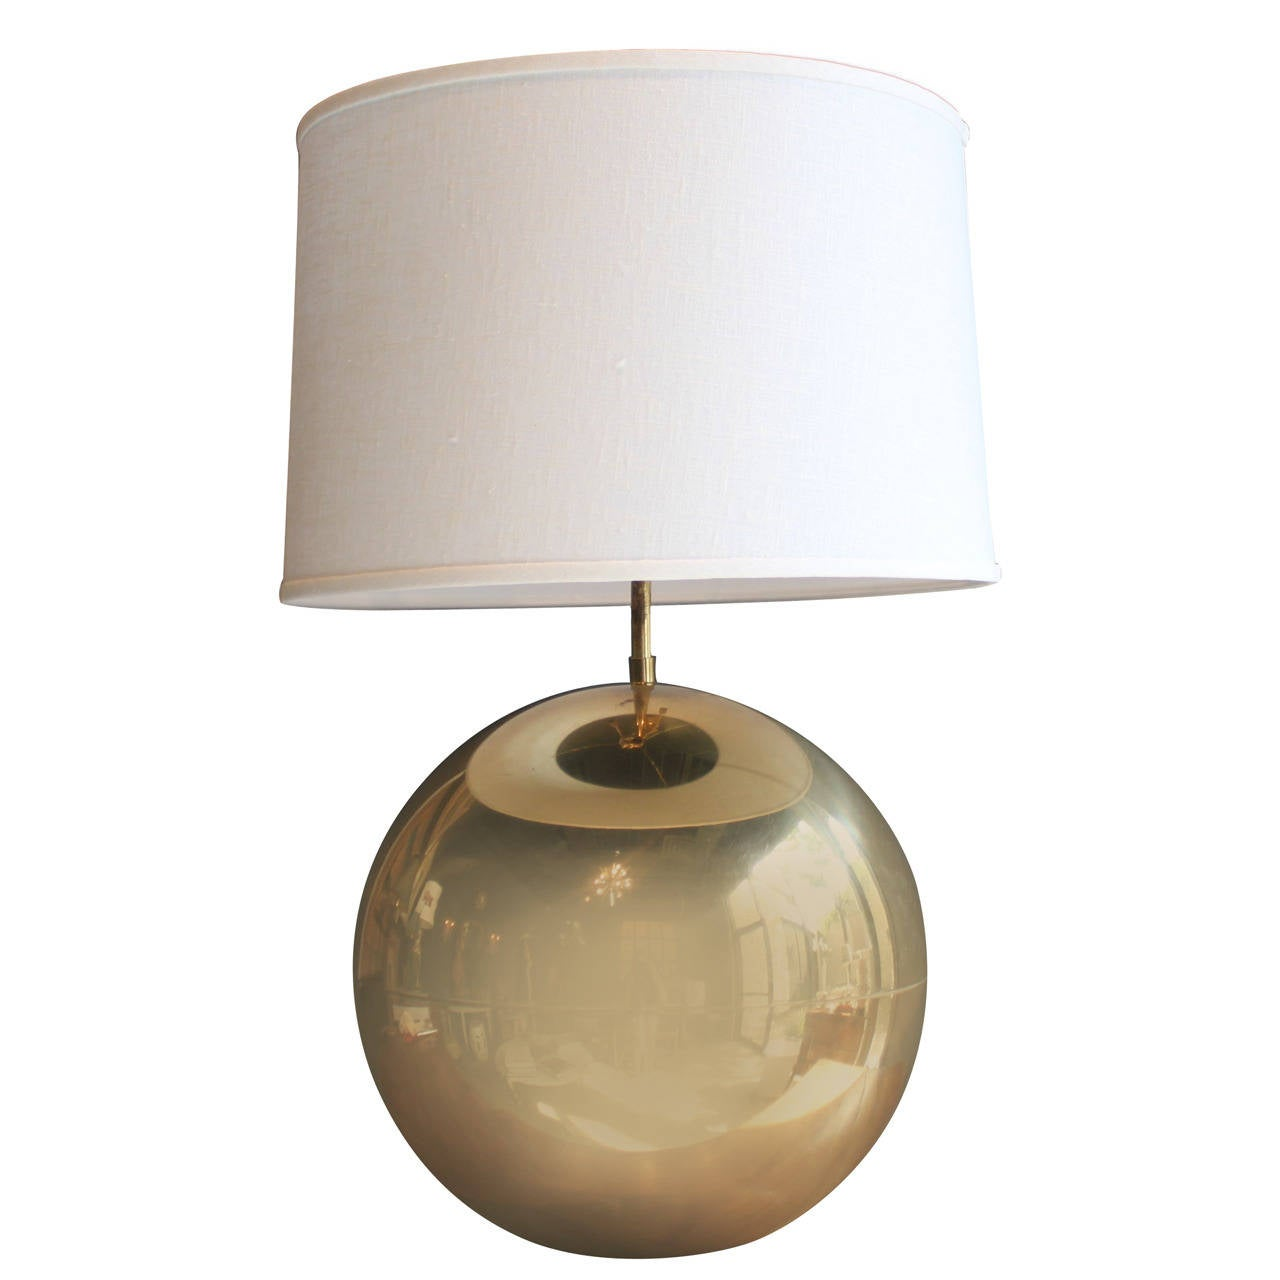 Art deco silver and stacked crystal ball floor lamp at 1stdibs - Mid Century Brass Sphere Karl Springer Table Lamp 1